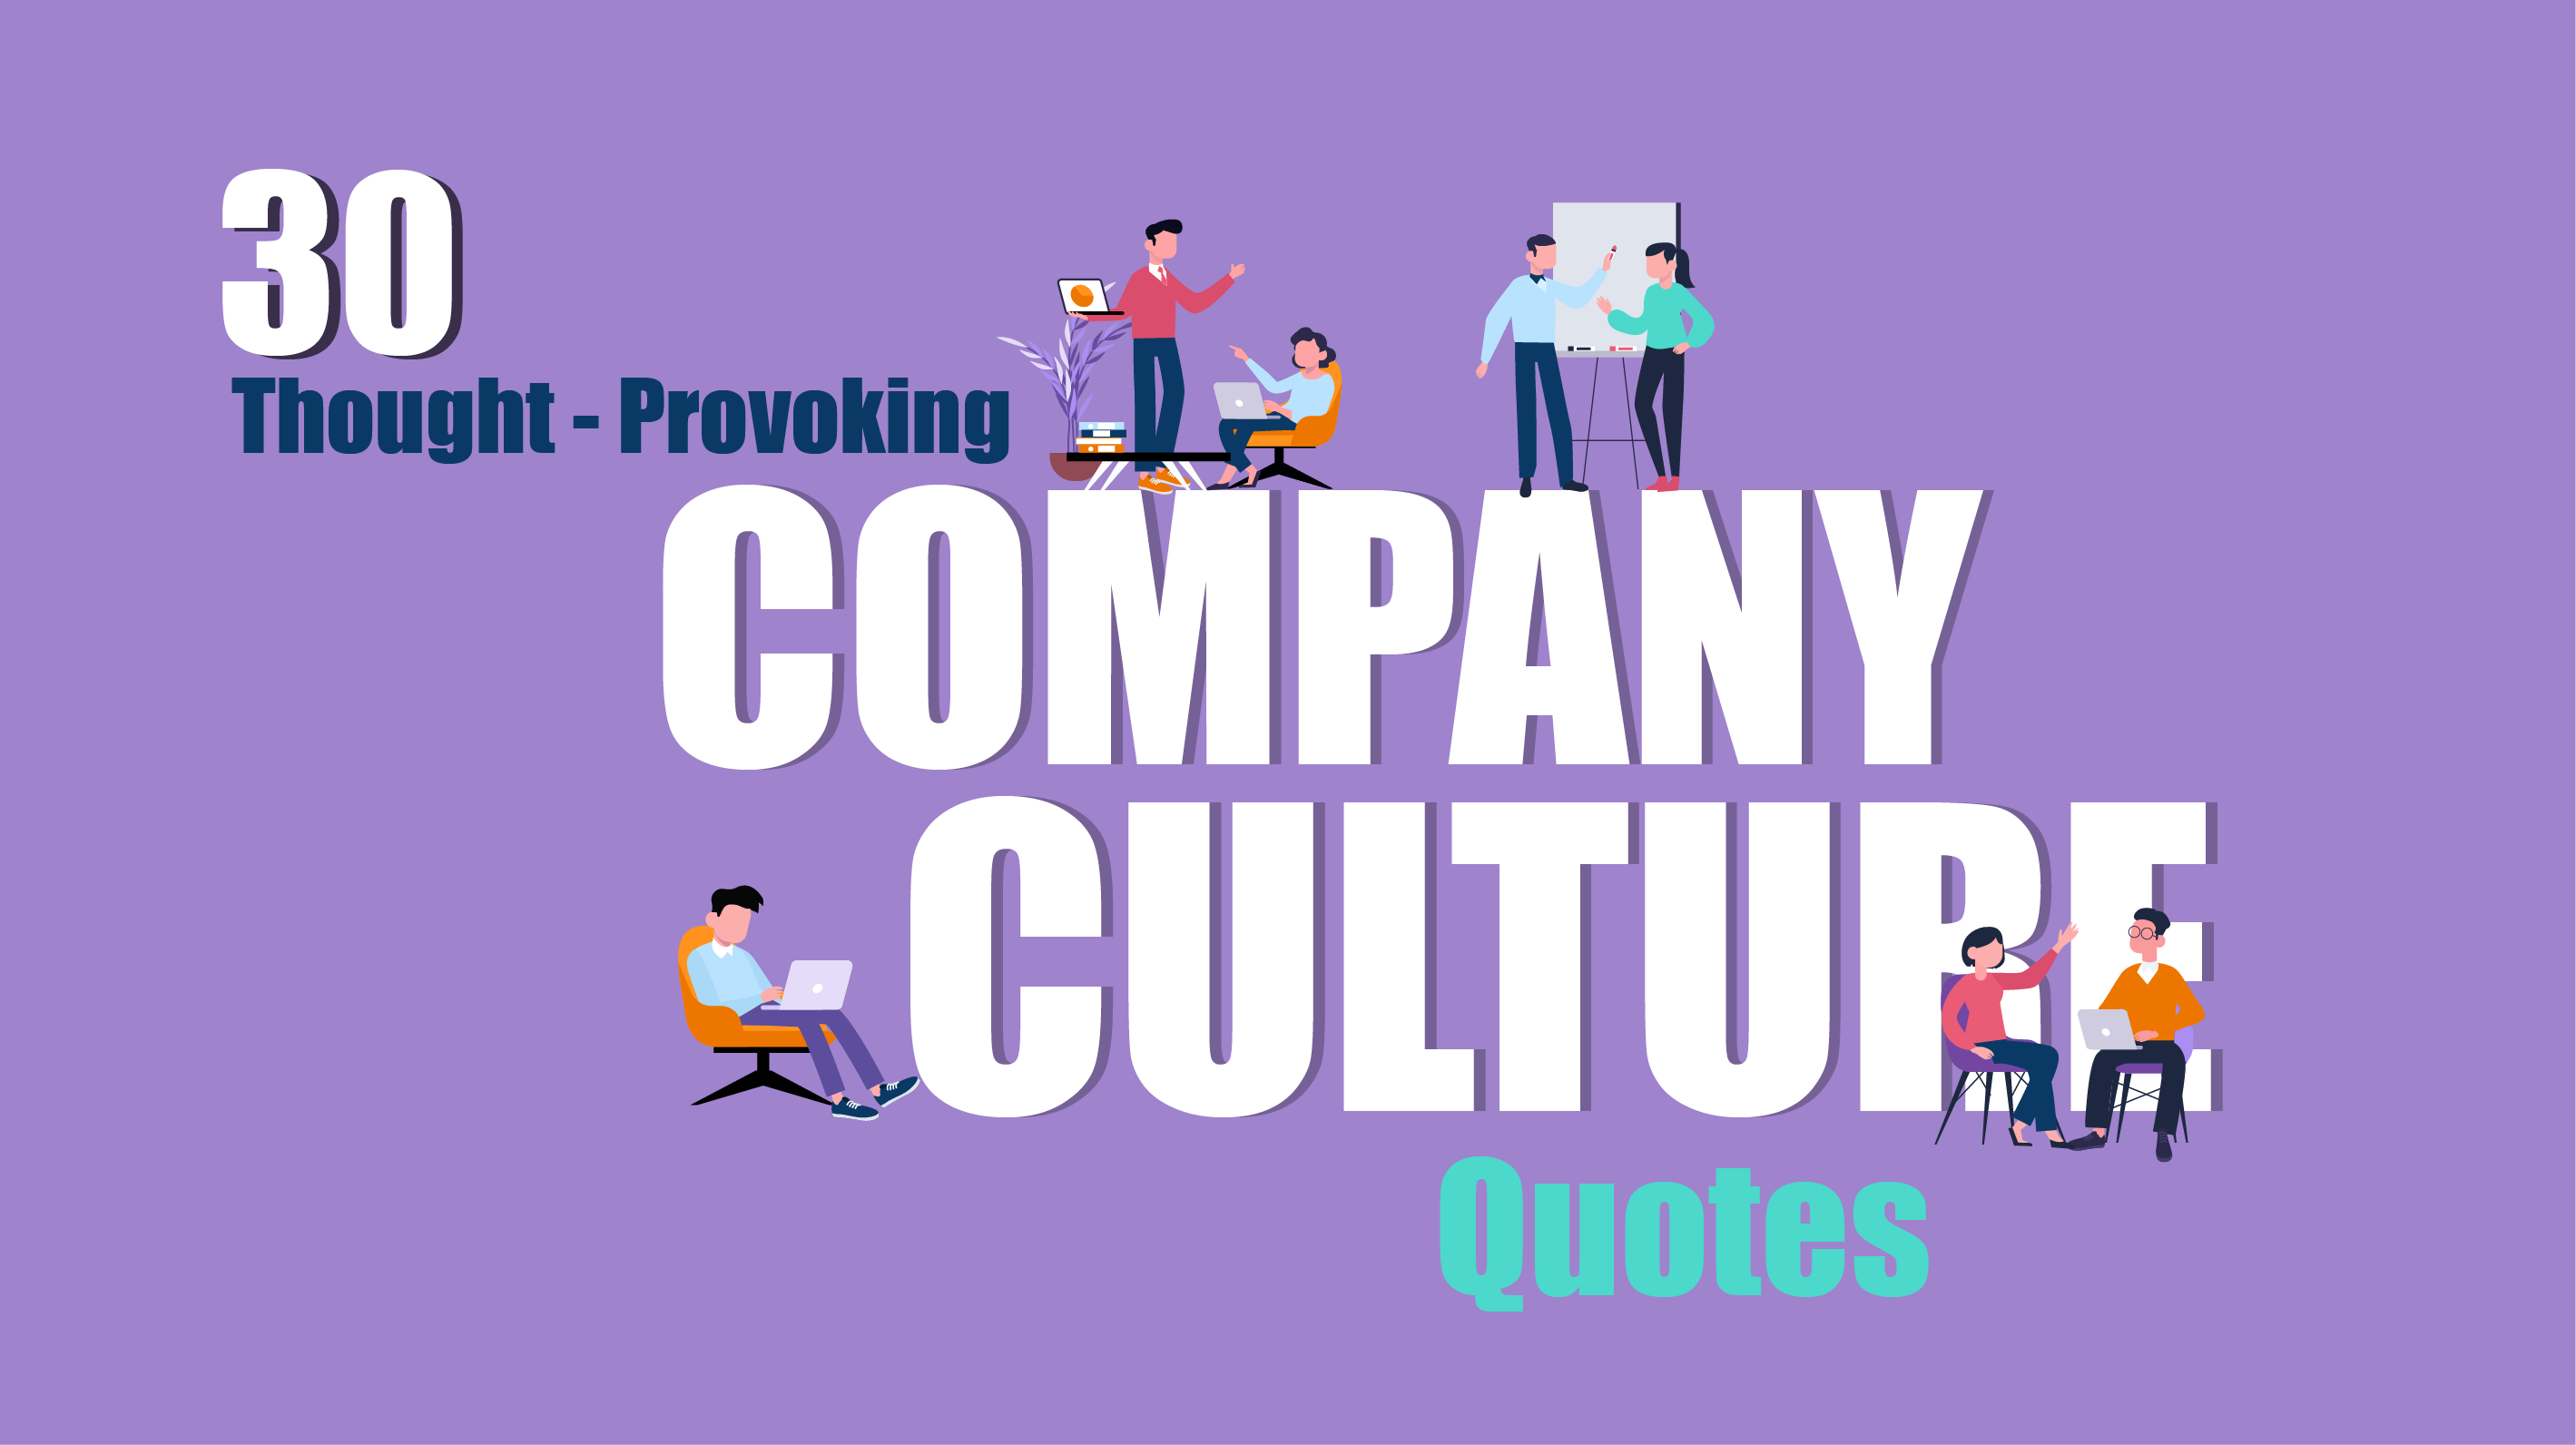 30 Thought-Provoking Company Culture Quotes